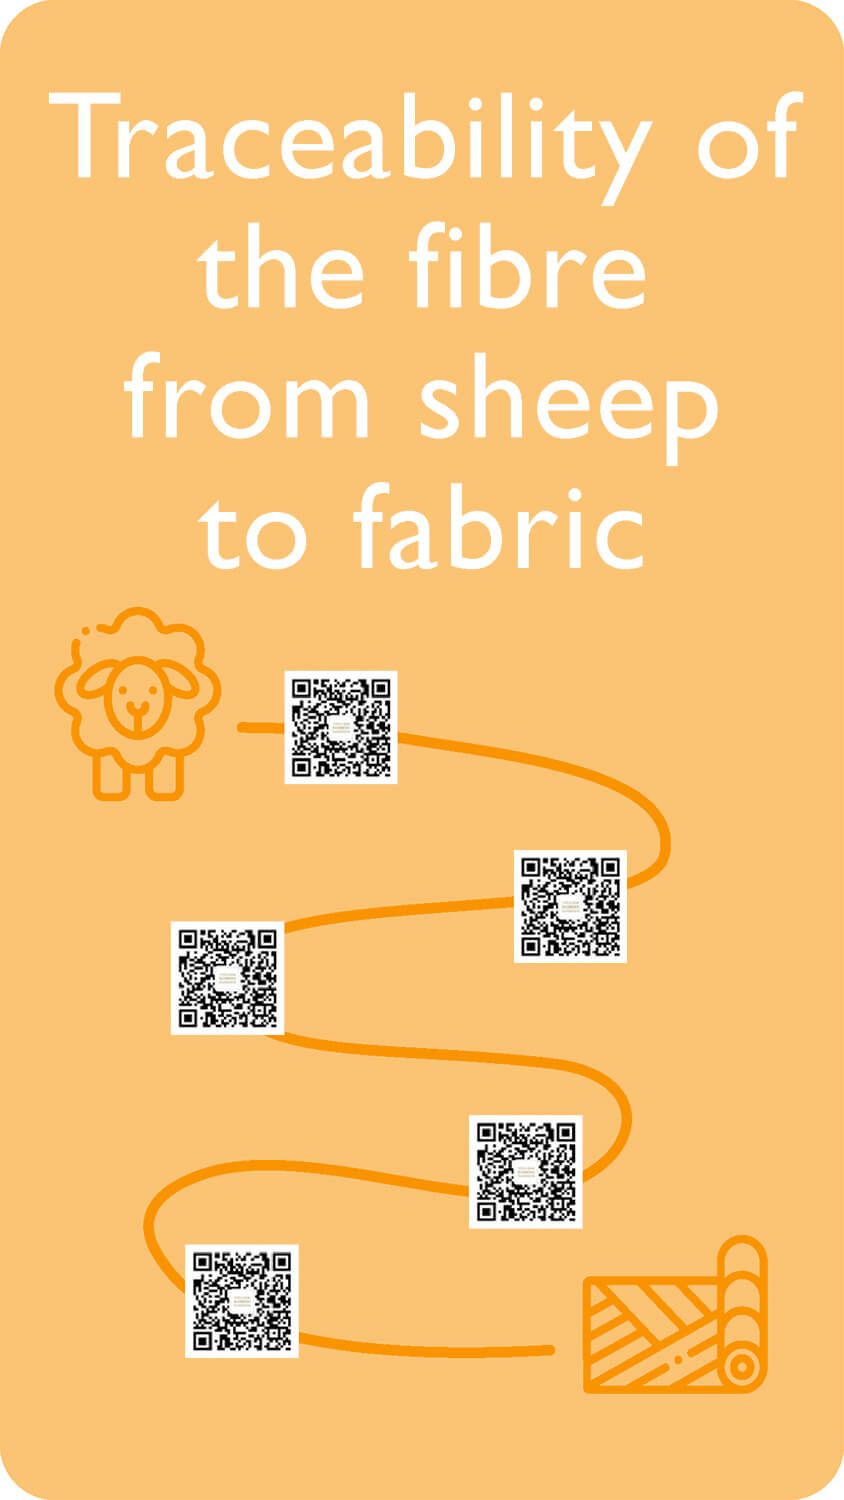 Traceability of the fibre from sheep to fabric